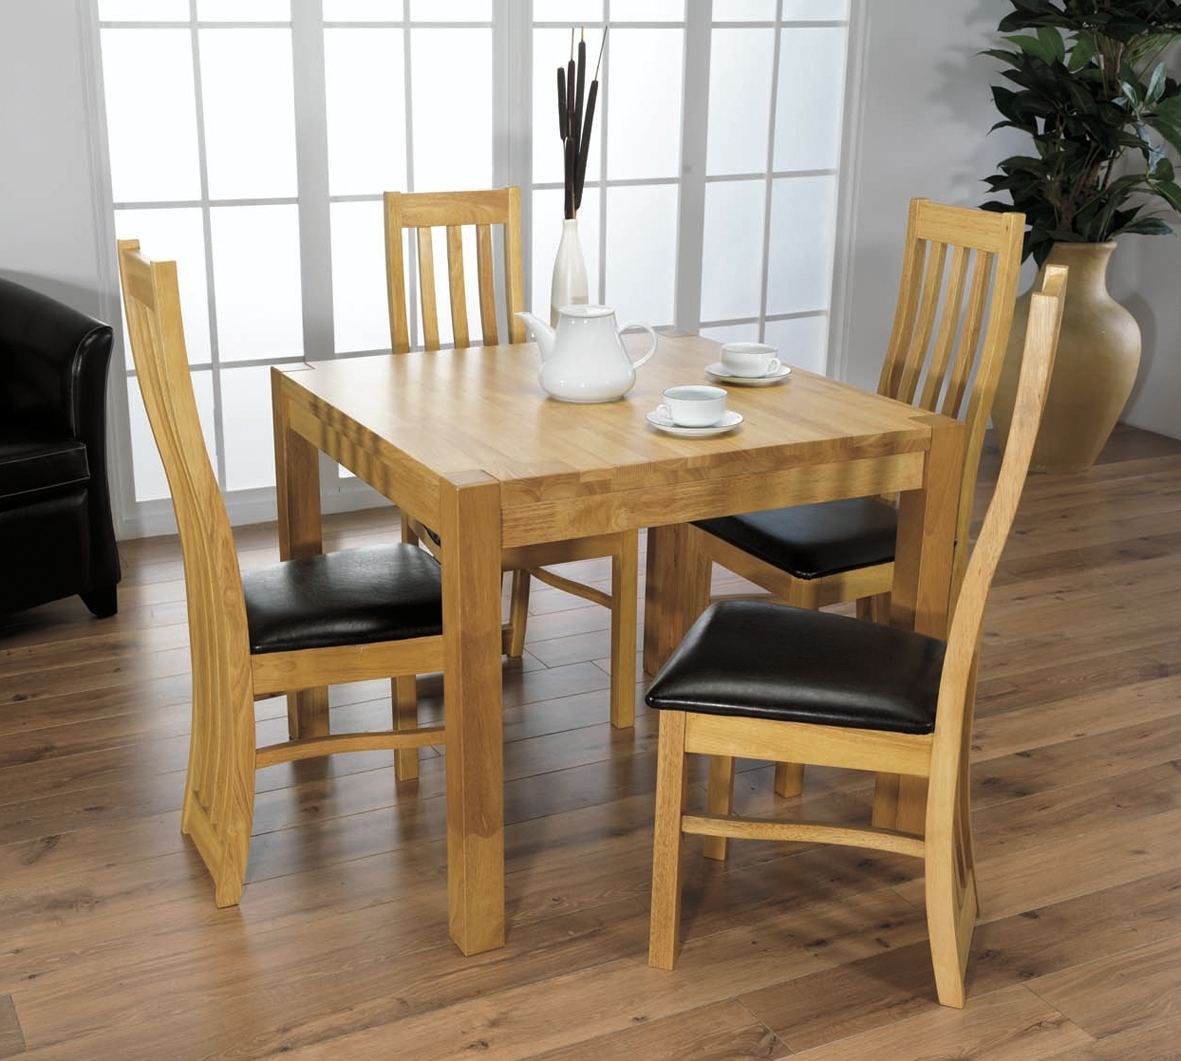 Why A Small Dining Table And Chairs Is A Premium Choice – Blogbeen For Widely Used Small Dining Tables (View 8 of 25)